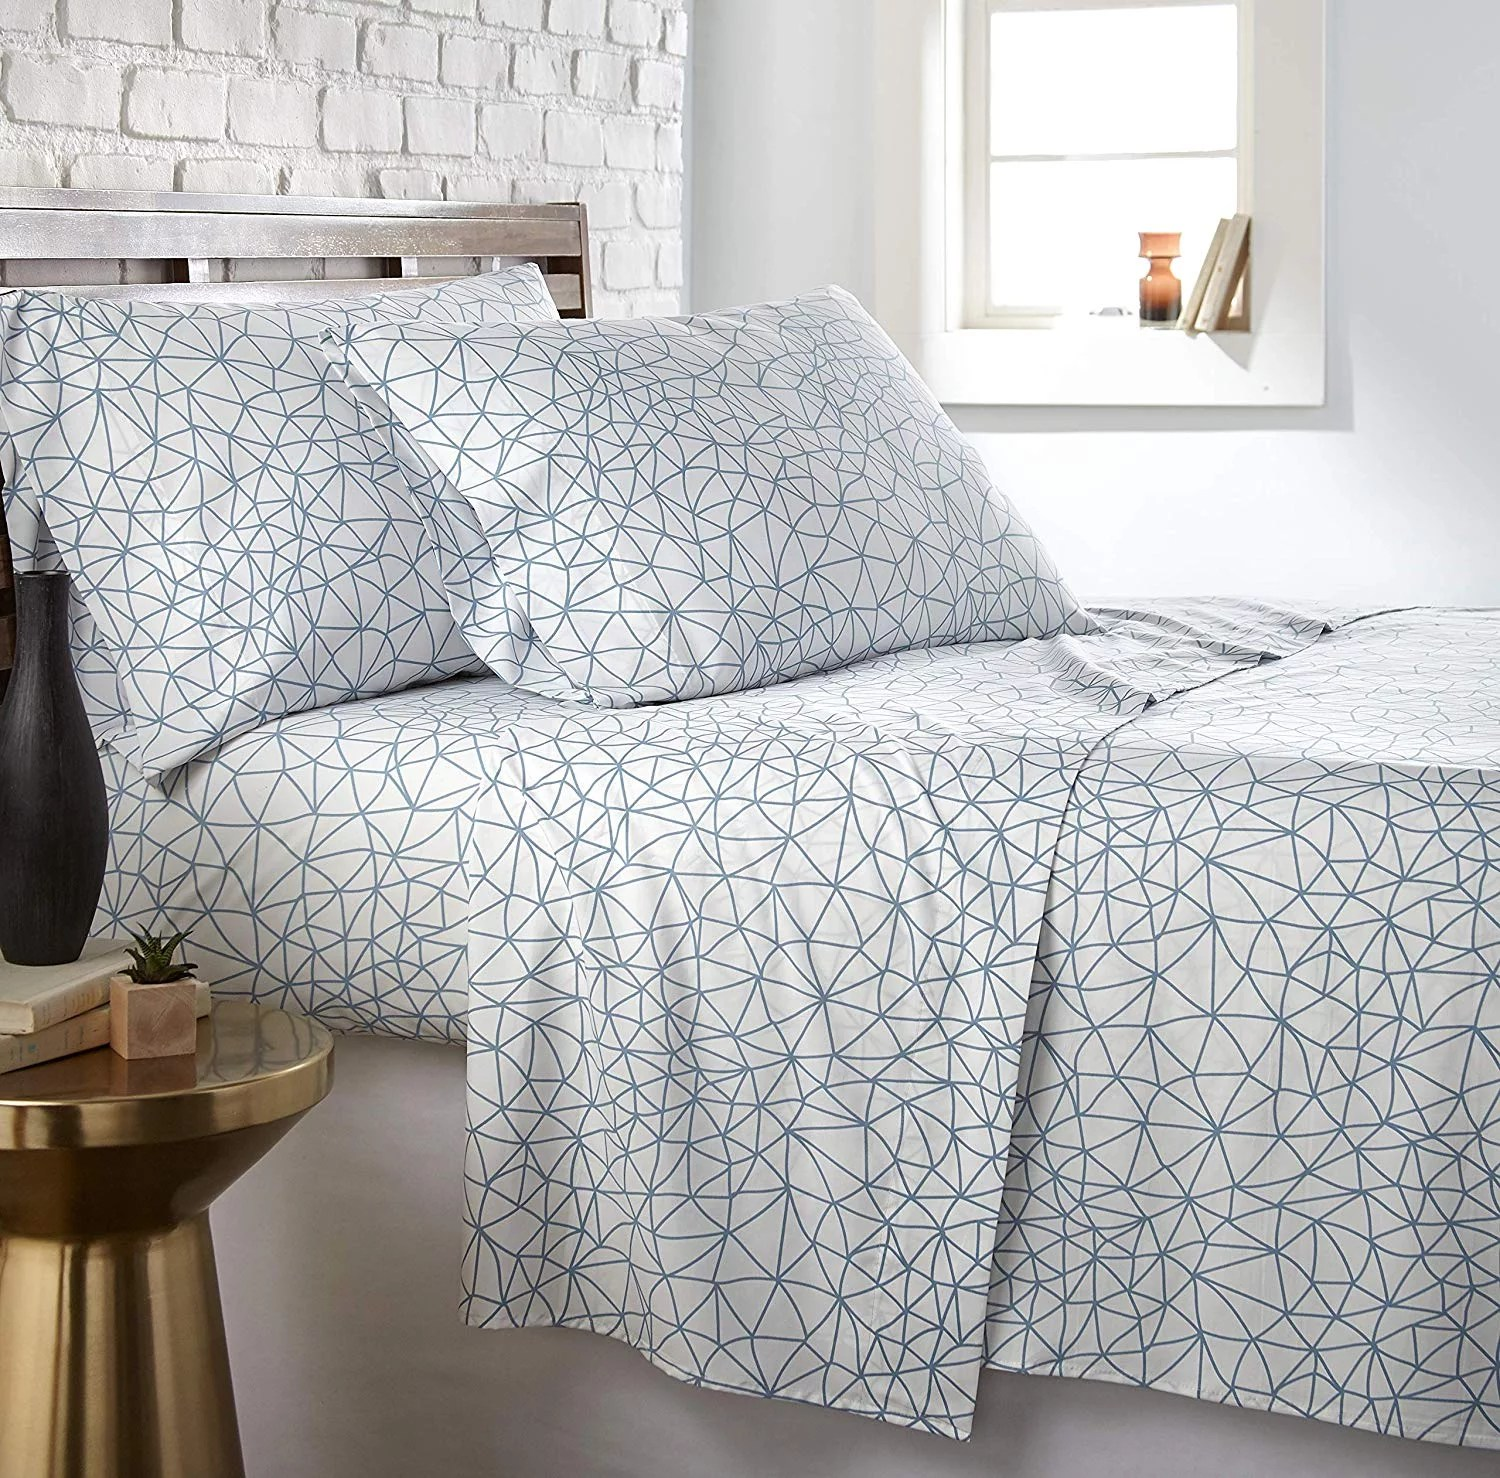 Best Sheets On Amazon Popsugar Home Australia